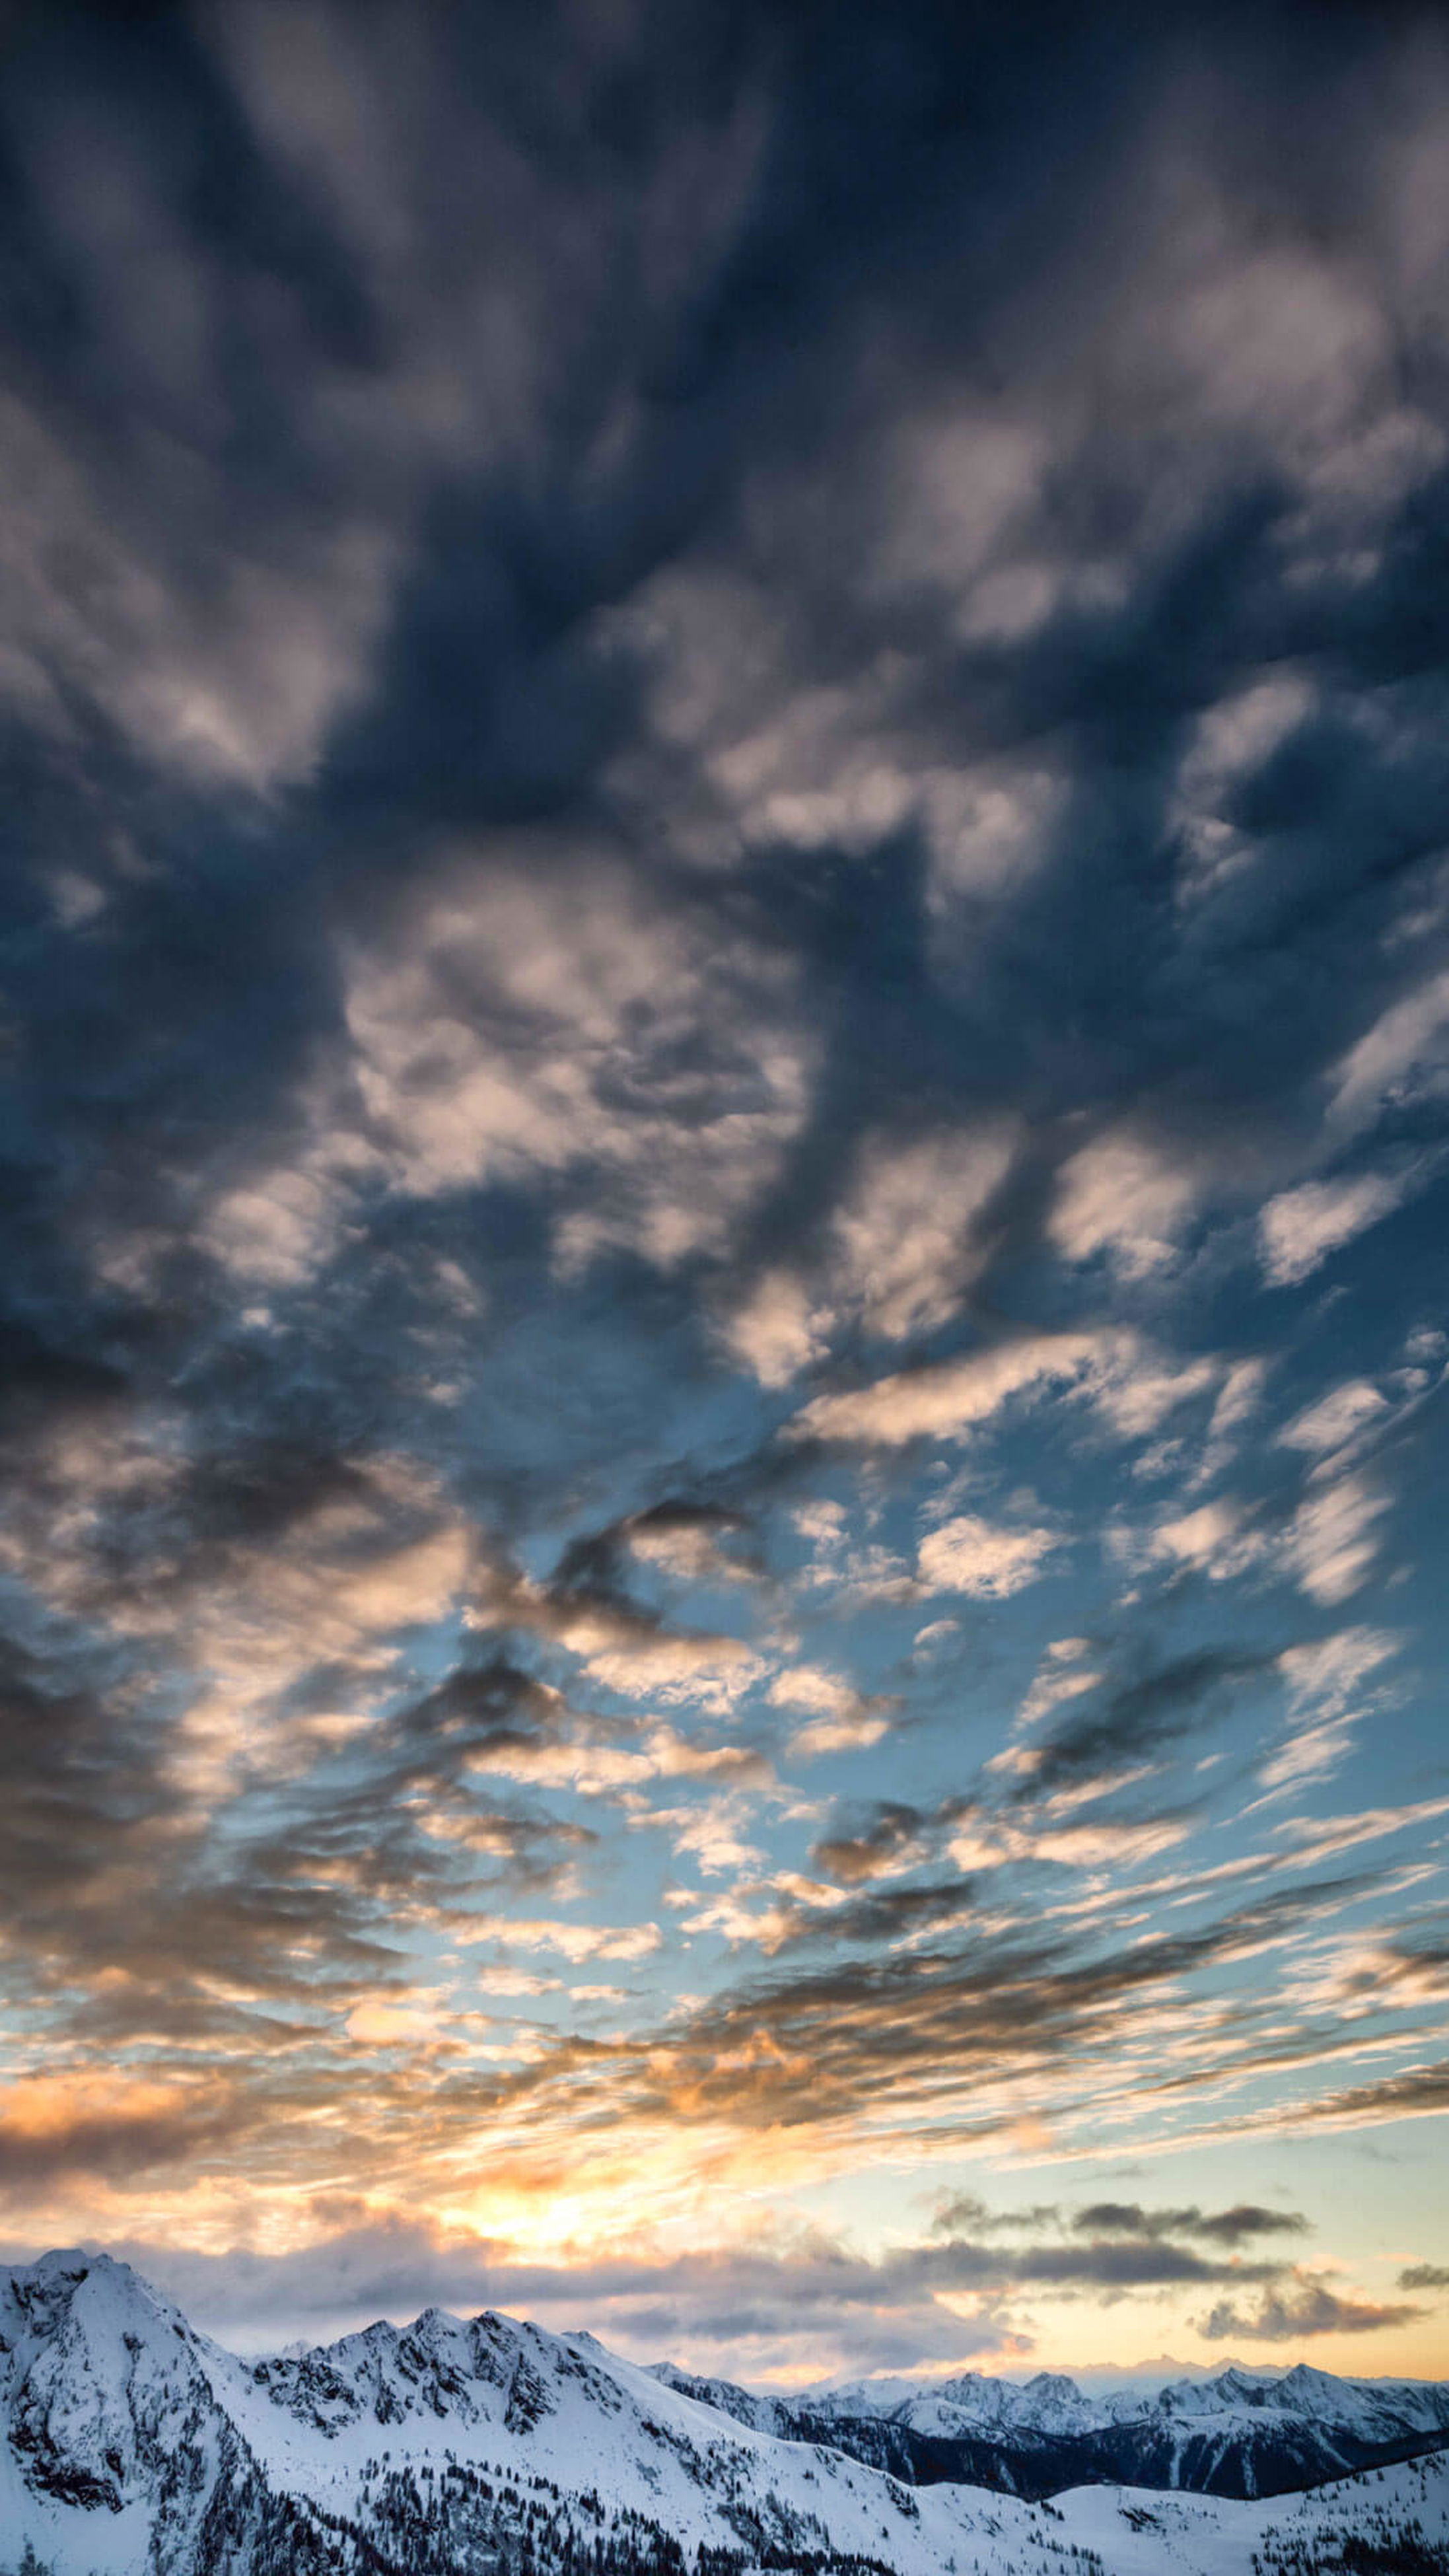 cloud - sky, dramatic sky, landscape, sunset, scenics, nature, beauty in nature, cloudscape, awe, no people, mountain, storm cloud, outdoors, sky, extreme weather, day